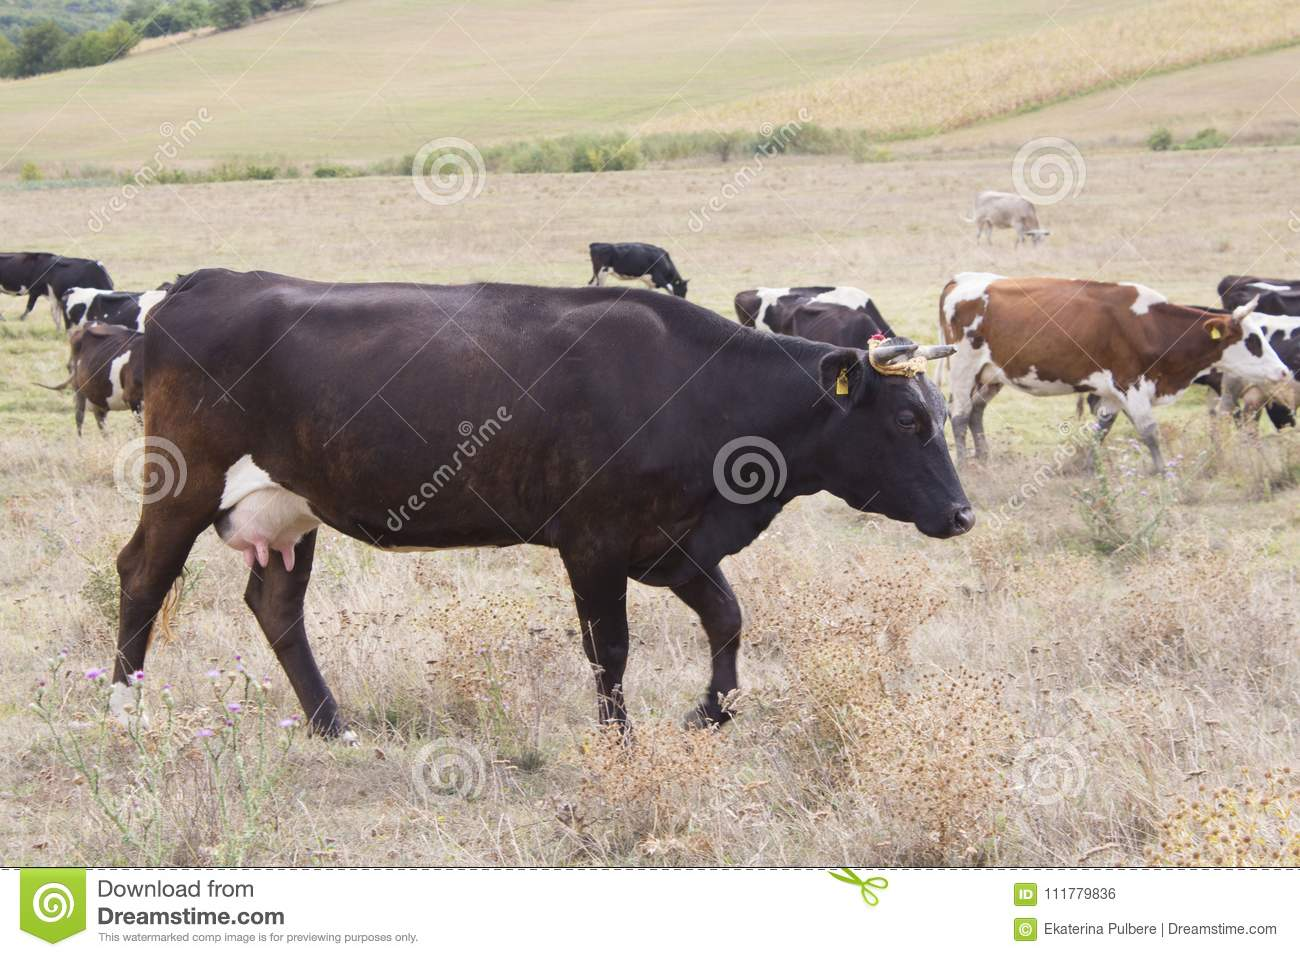 Brown and black cows grazing